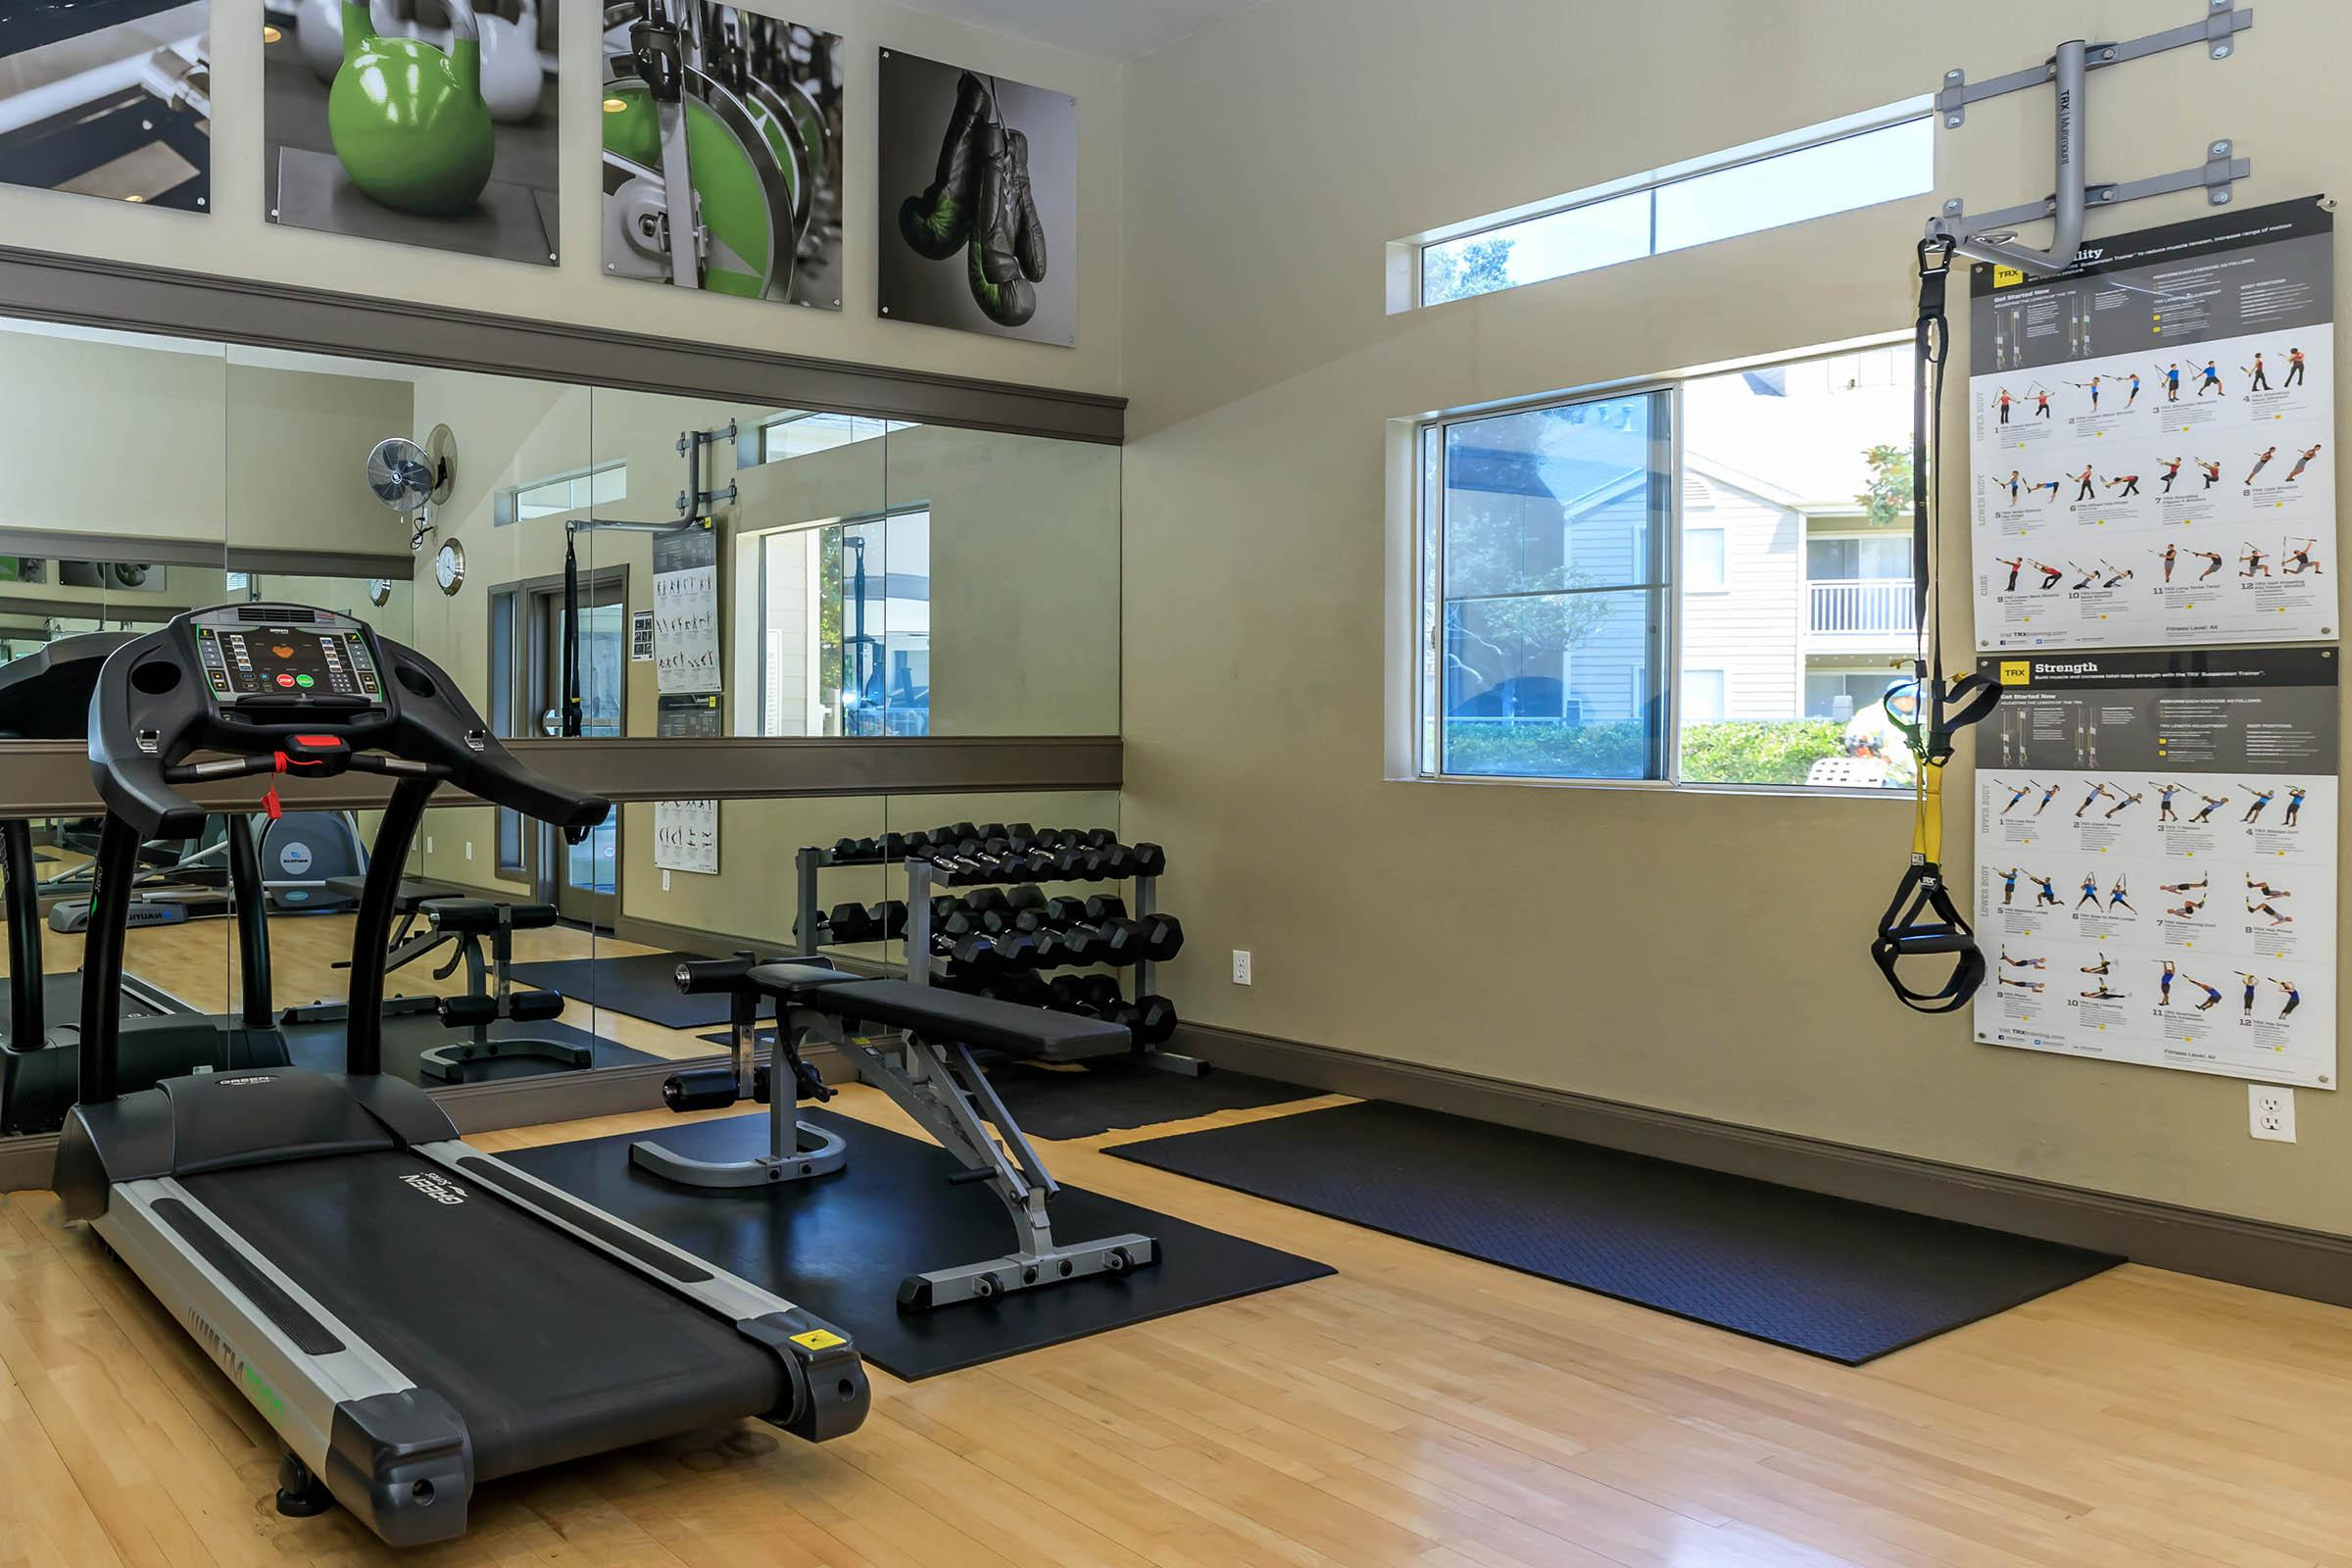 Cambridge Village Apartments community gym with mirrors